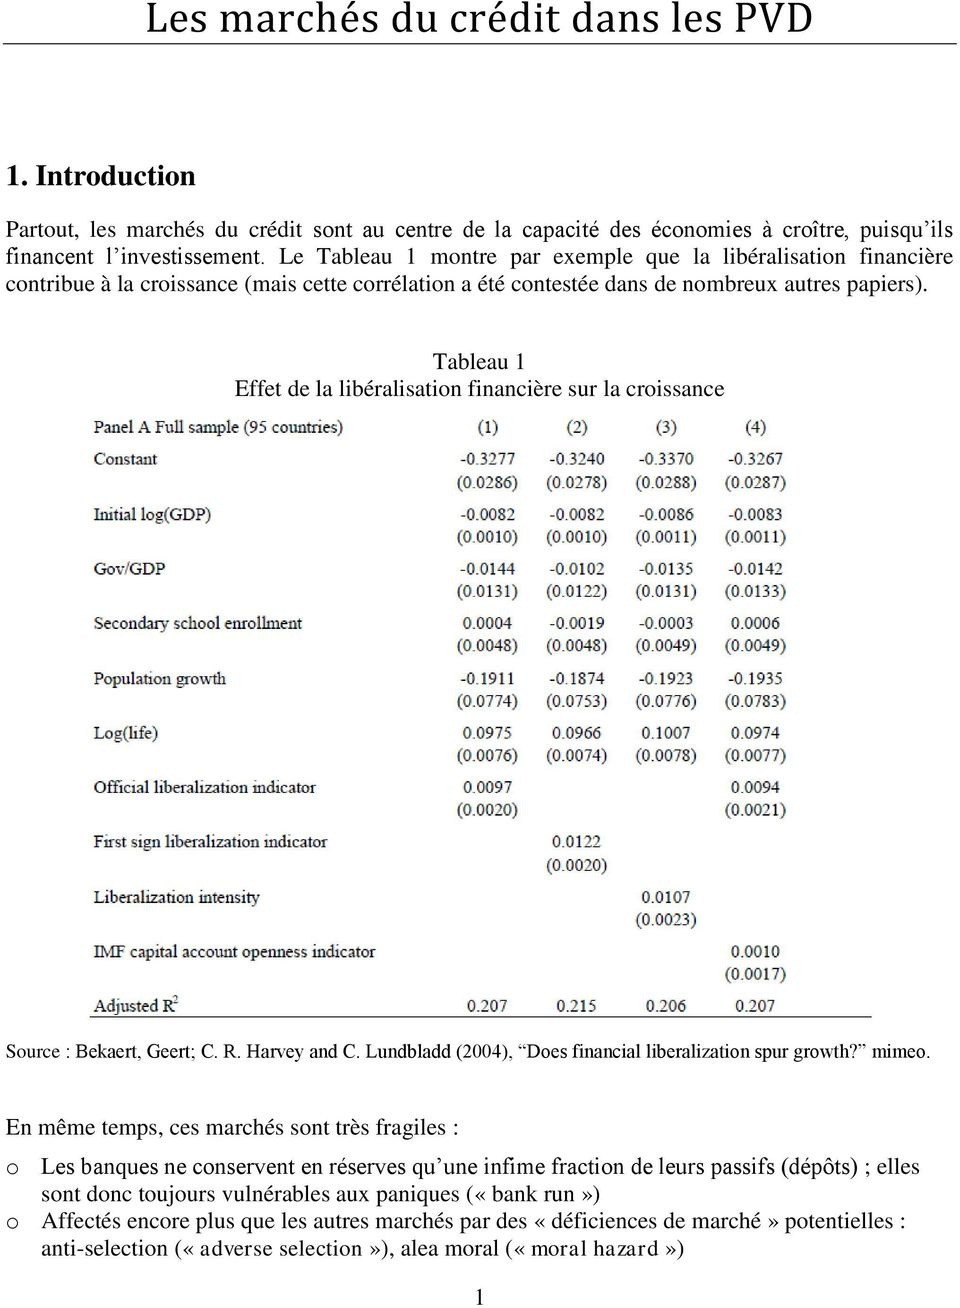 Taleau 1 Effet de la liéralisation financière sur la croissance Source : Bekaert, Geert; C. R. Harvey and C. Lundladd (004), Does financial lieralization sur growth? mimeo.